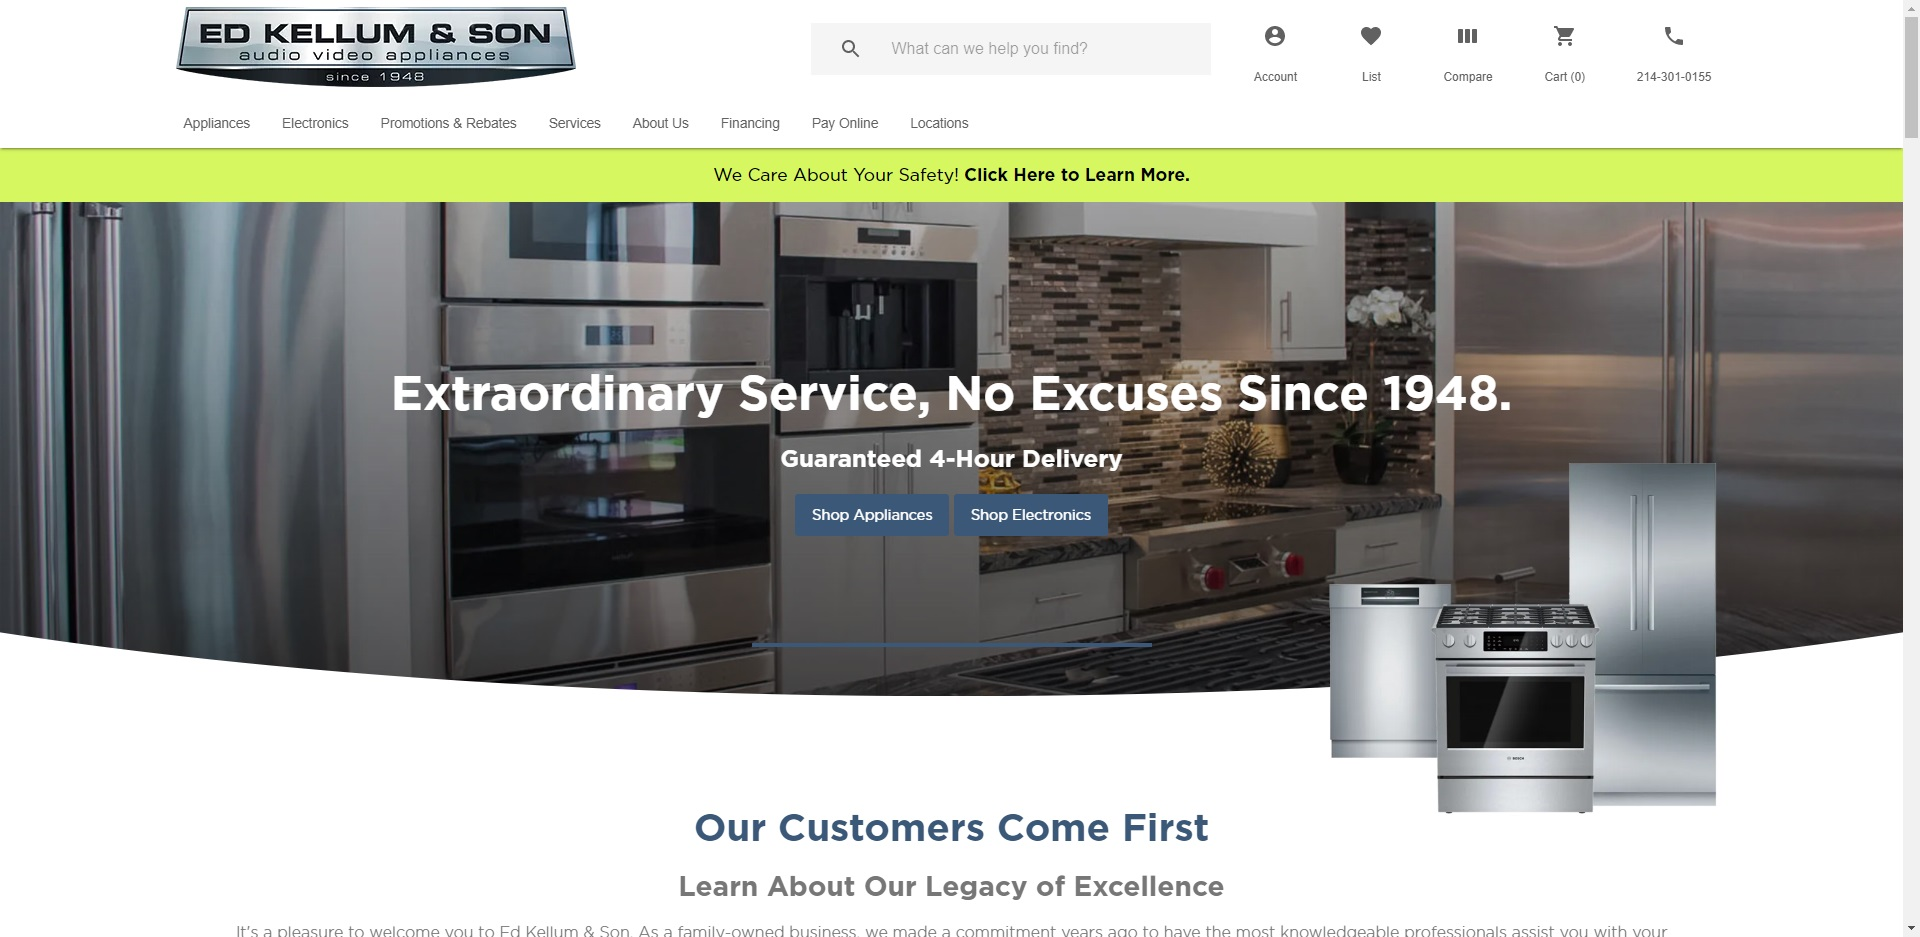 The Best Whitegoods Stores in Dallas, TX